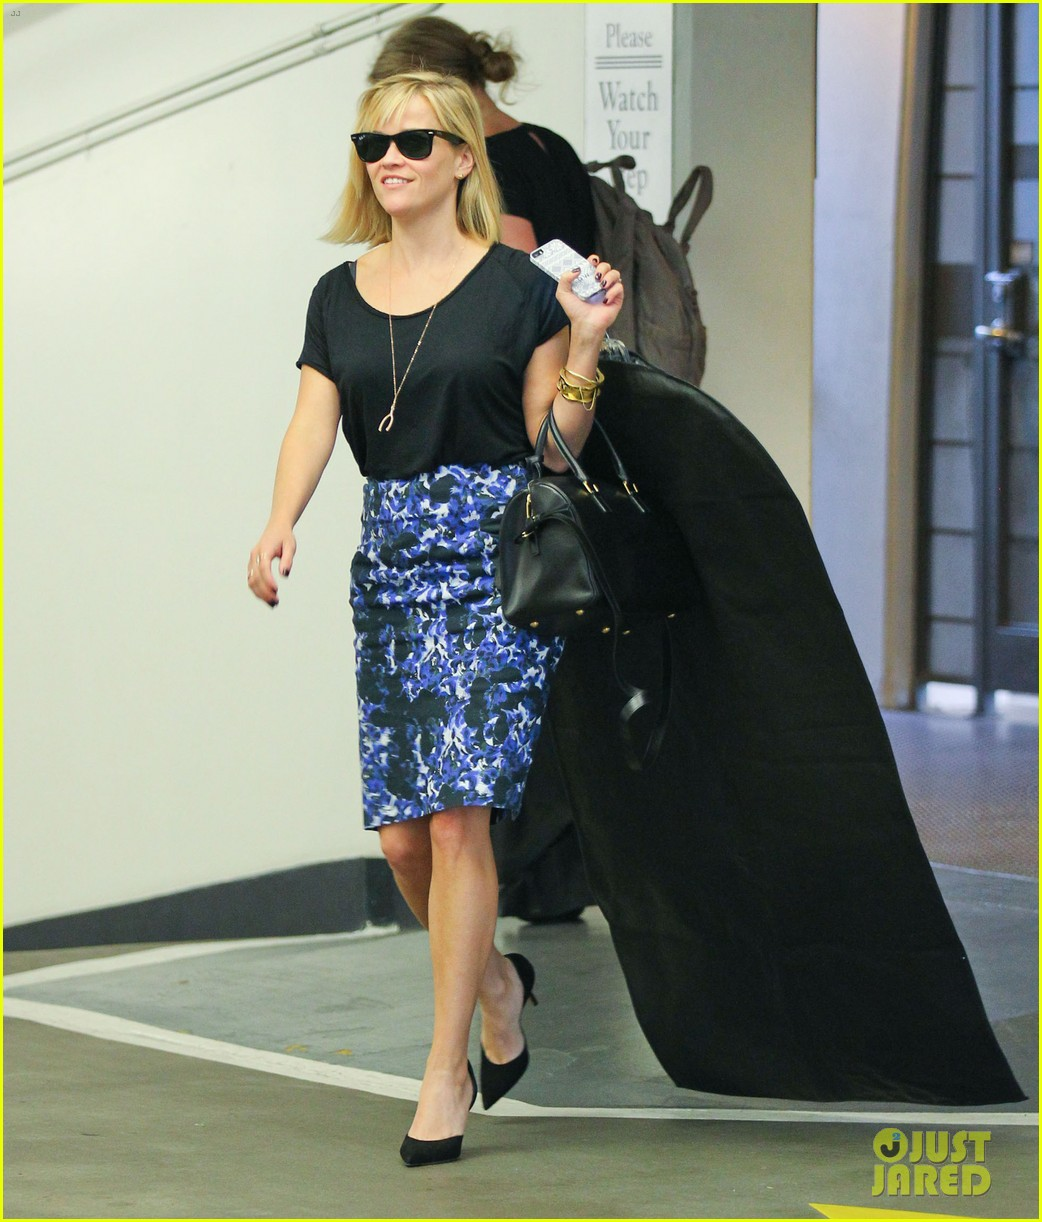 reese witherspoon steps out after the intern news 08